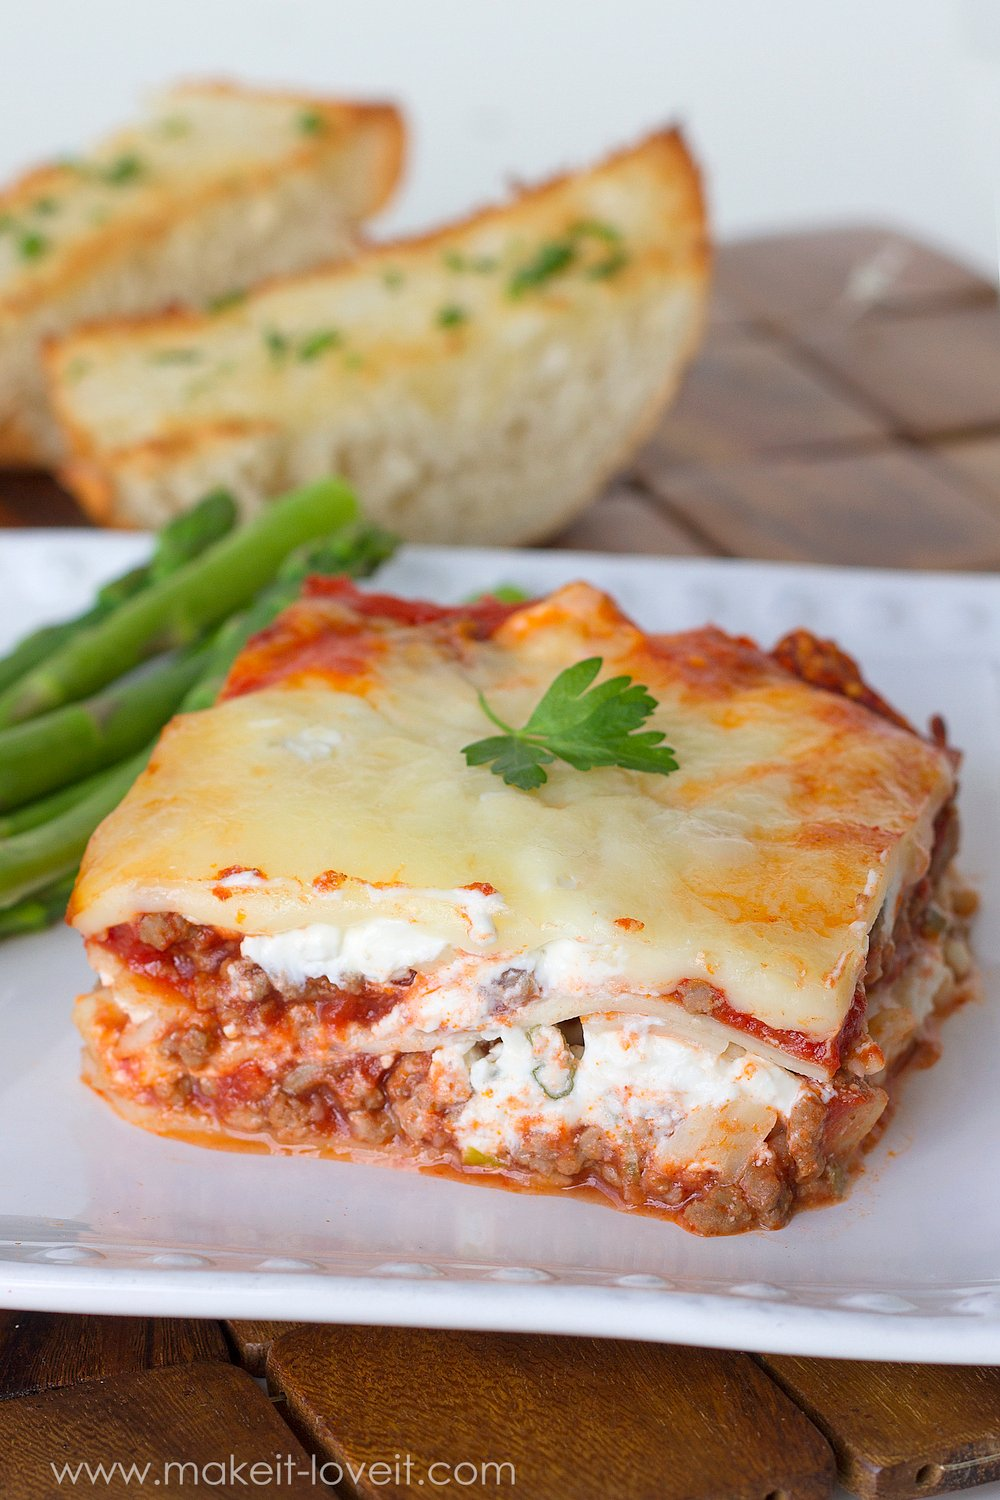 Creamy and Cheesy Lasagna…a treasured Family Recipe!